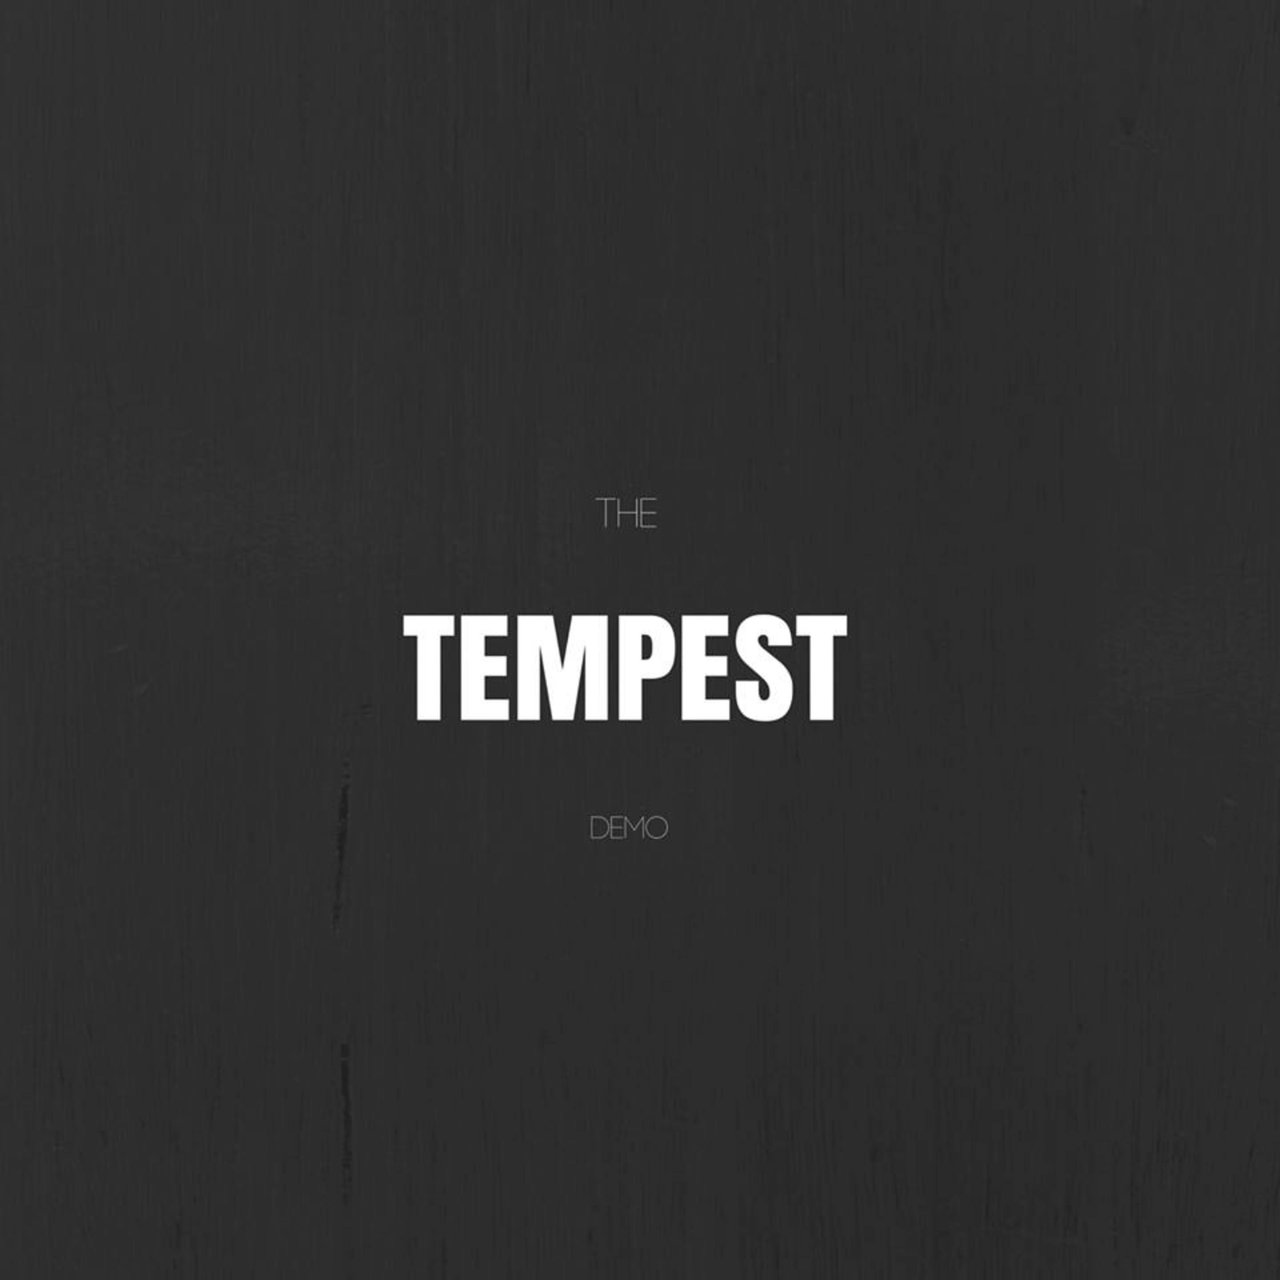 The Tempest Demo